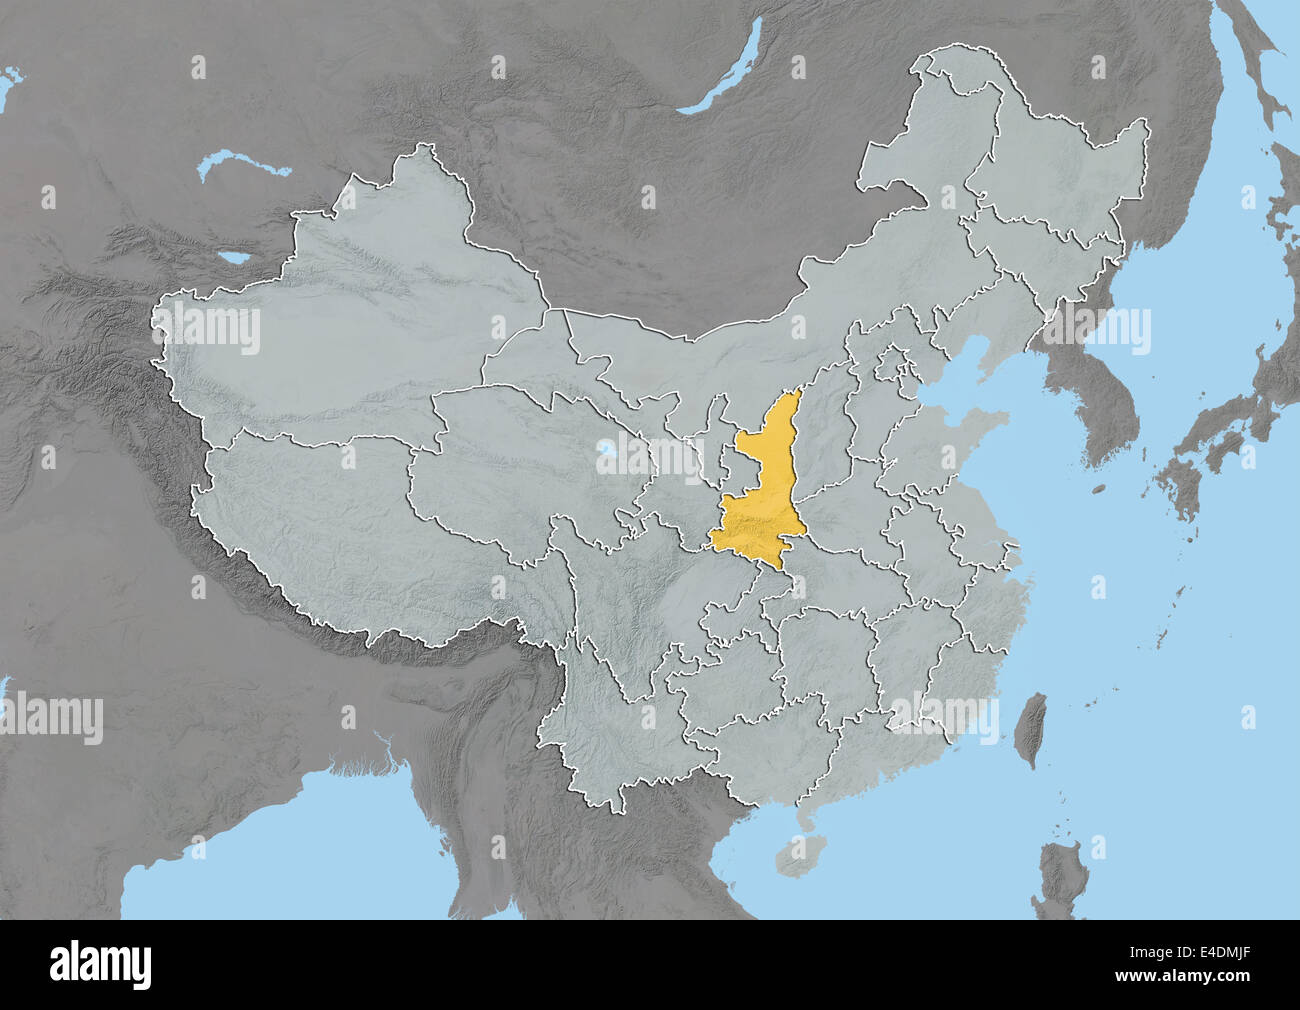 Shaanxi china asia map stock photos shaanxi china asia map stock province of shaanxi china relief map stock image gumiabroncs Image collections